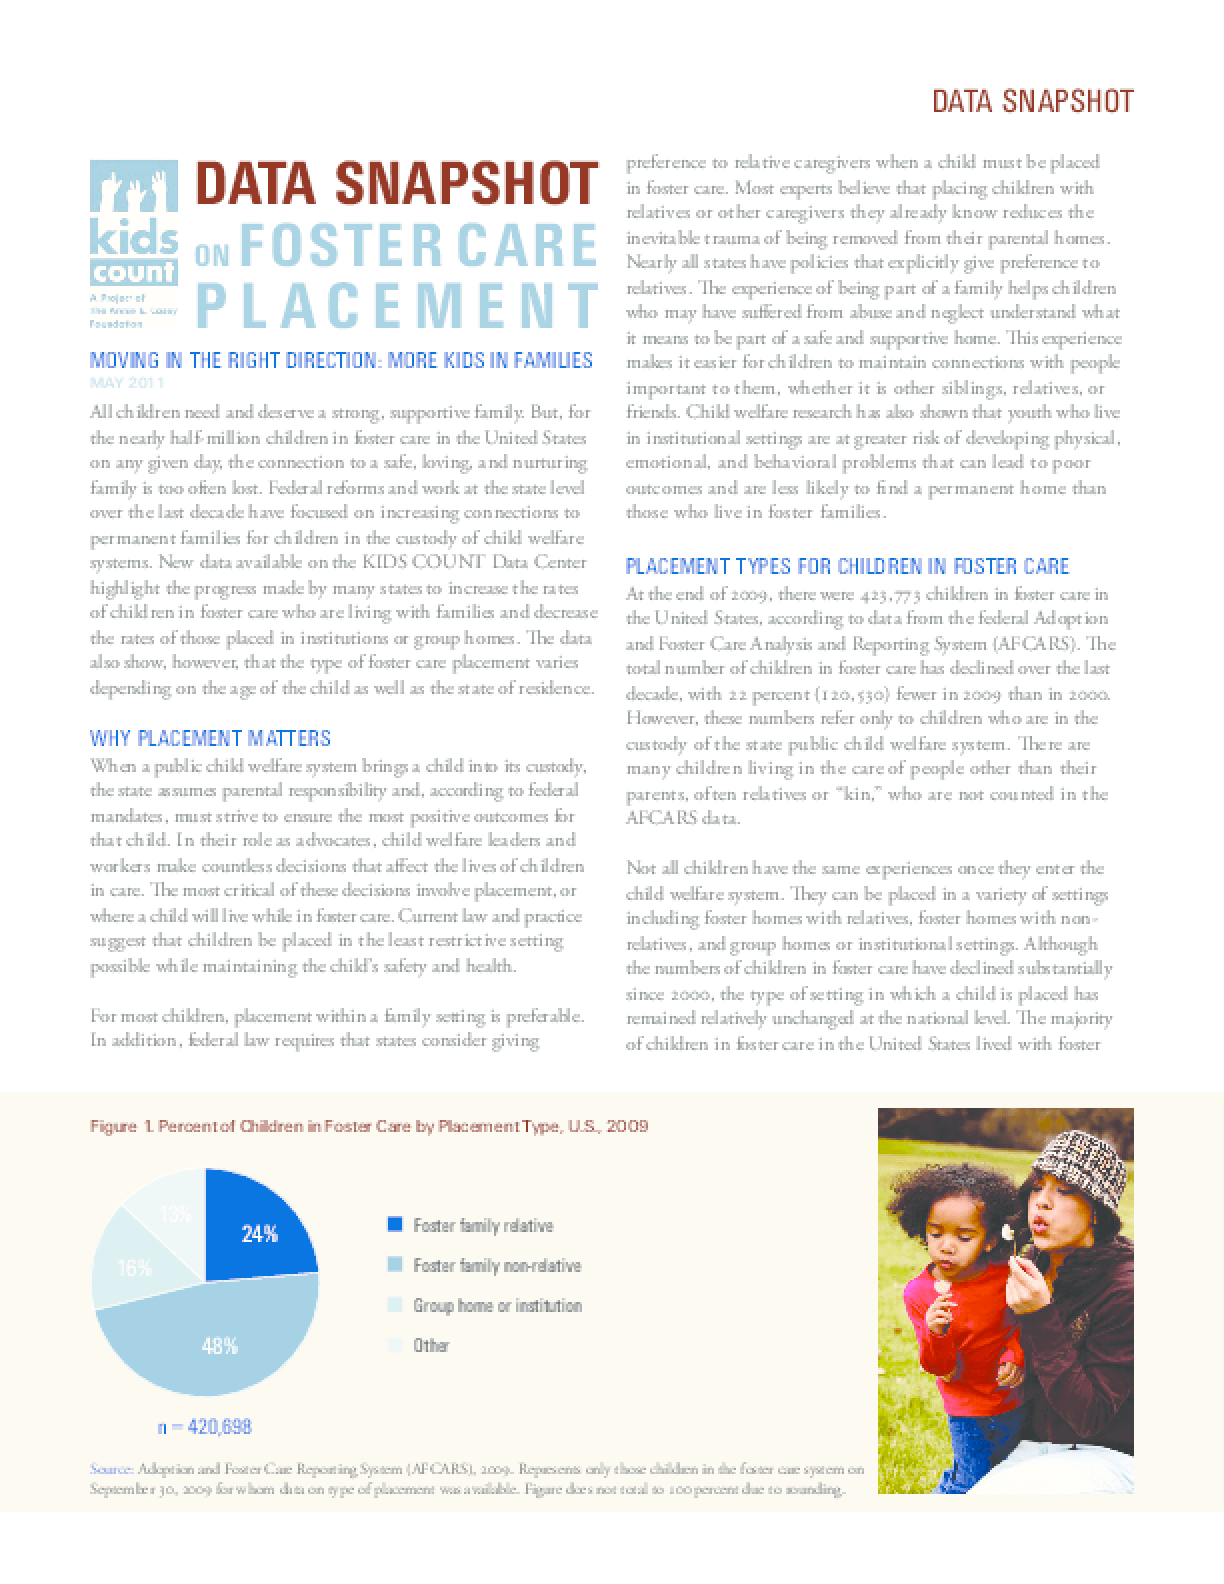 Data Snapshot on Foster Care Placement